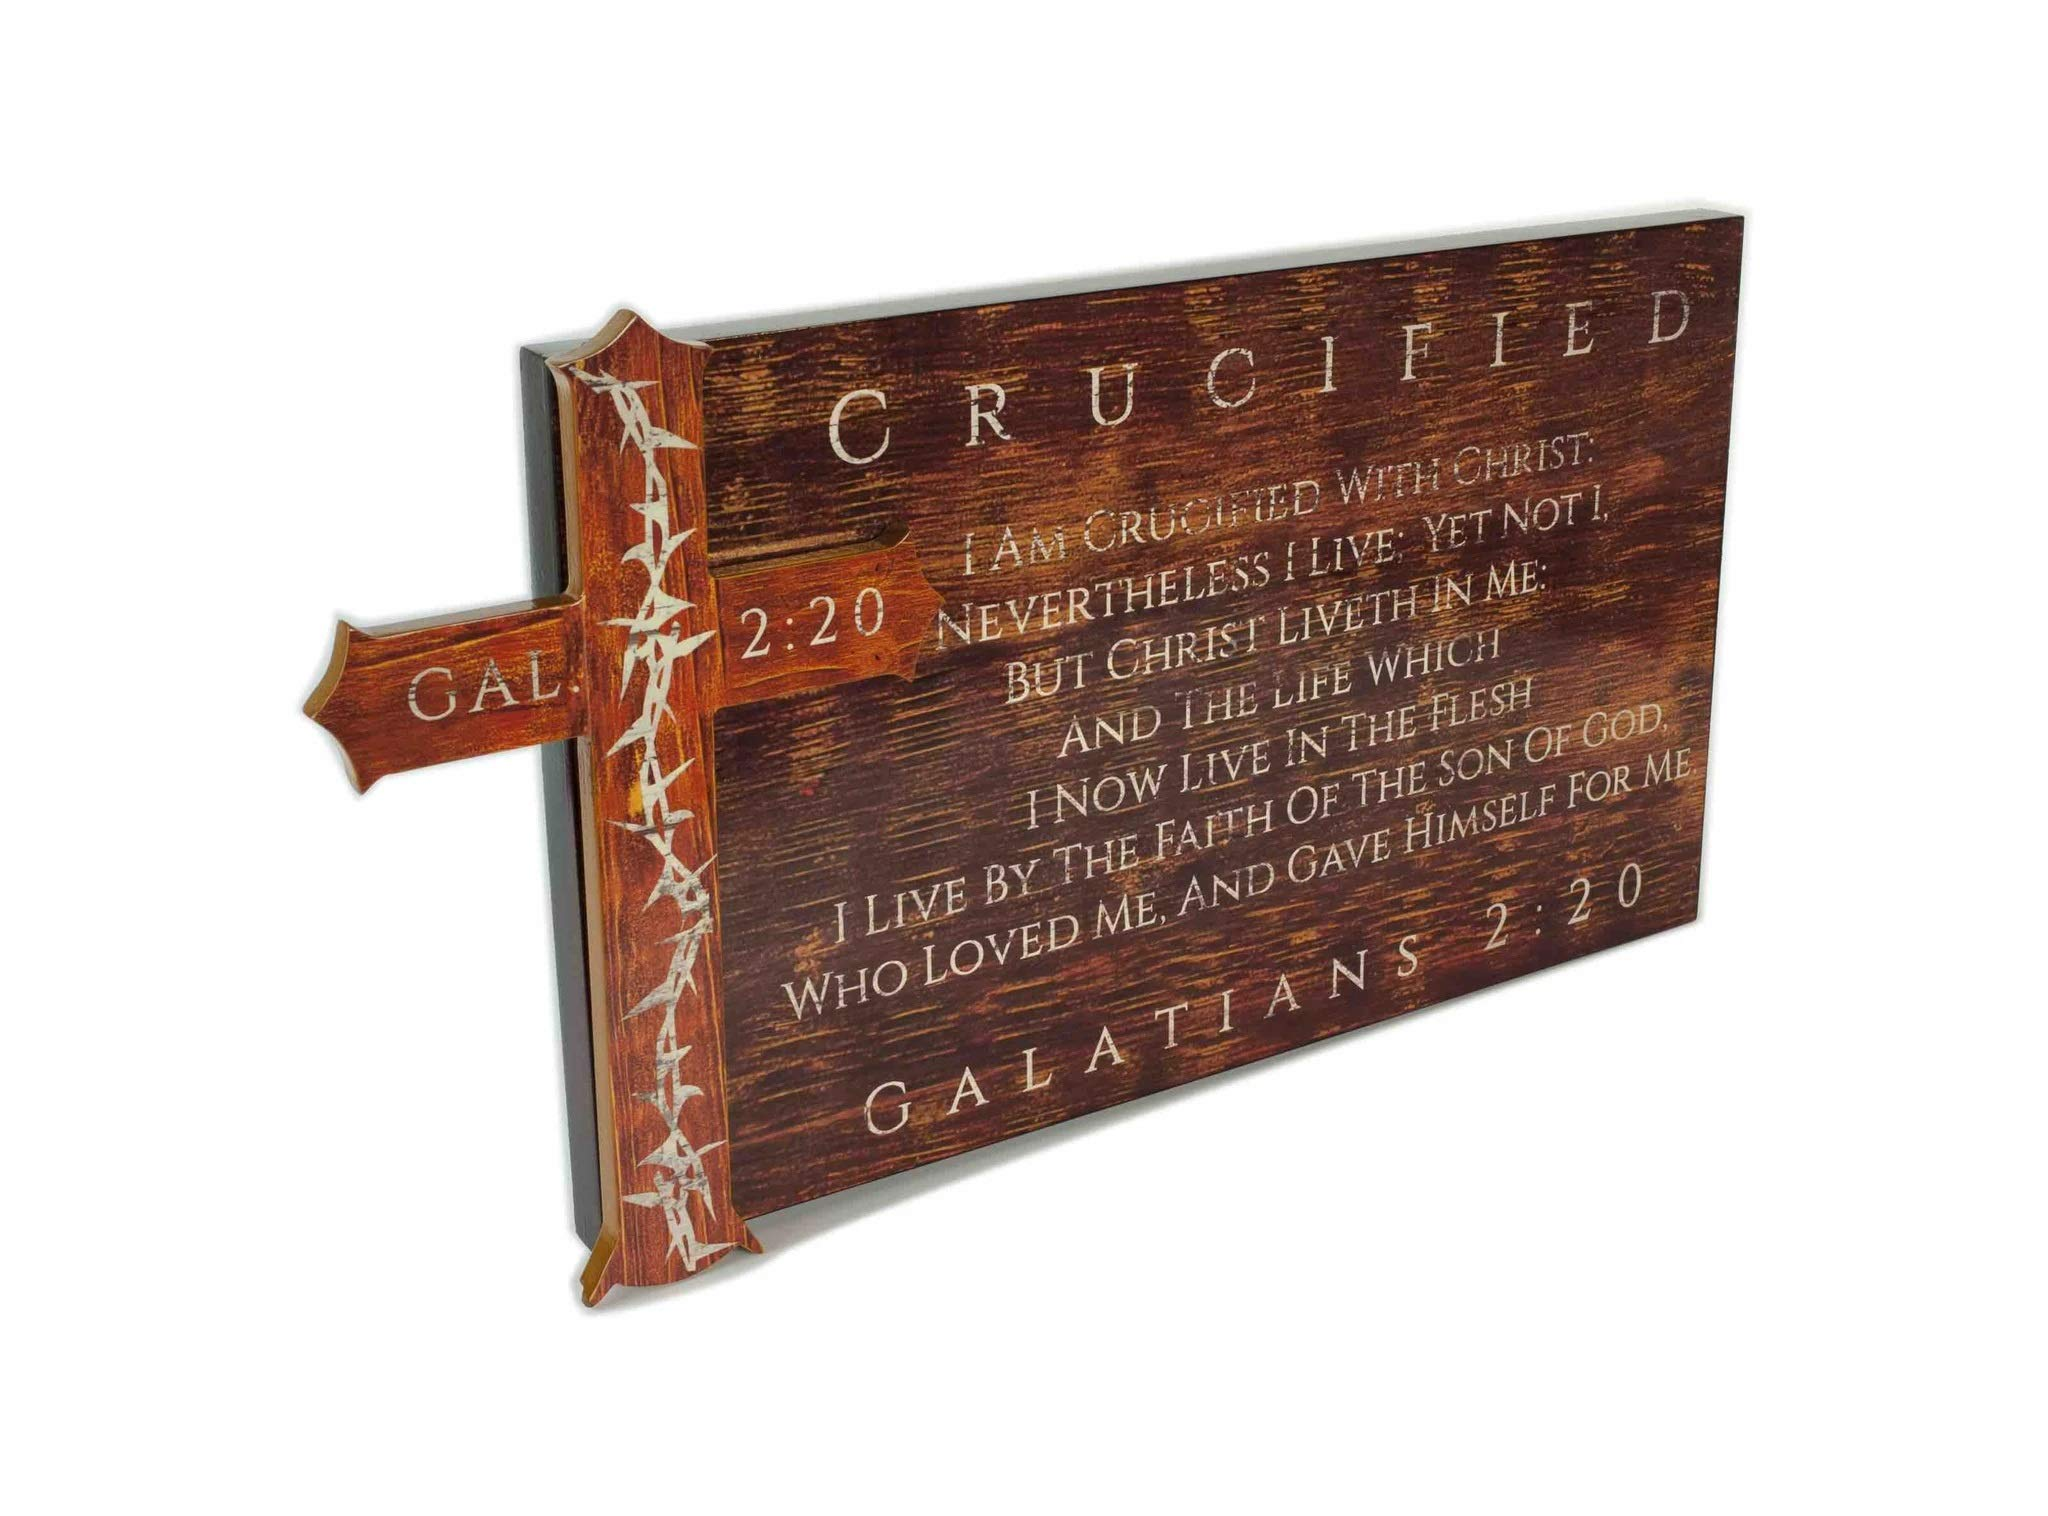 Spirit & Truth Christian Home Decor Wall Art 3-D Crucified – Galatians 2:20″ Sign Plaque Distressed Wood Appearance Gloss Finish with Mounted Thorn Cross 24 x 13 x 1.5